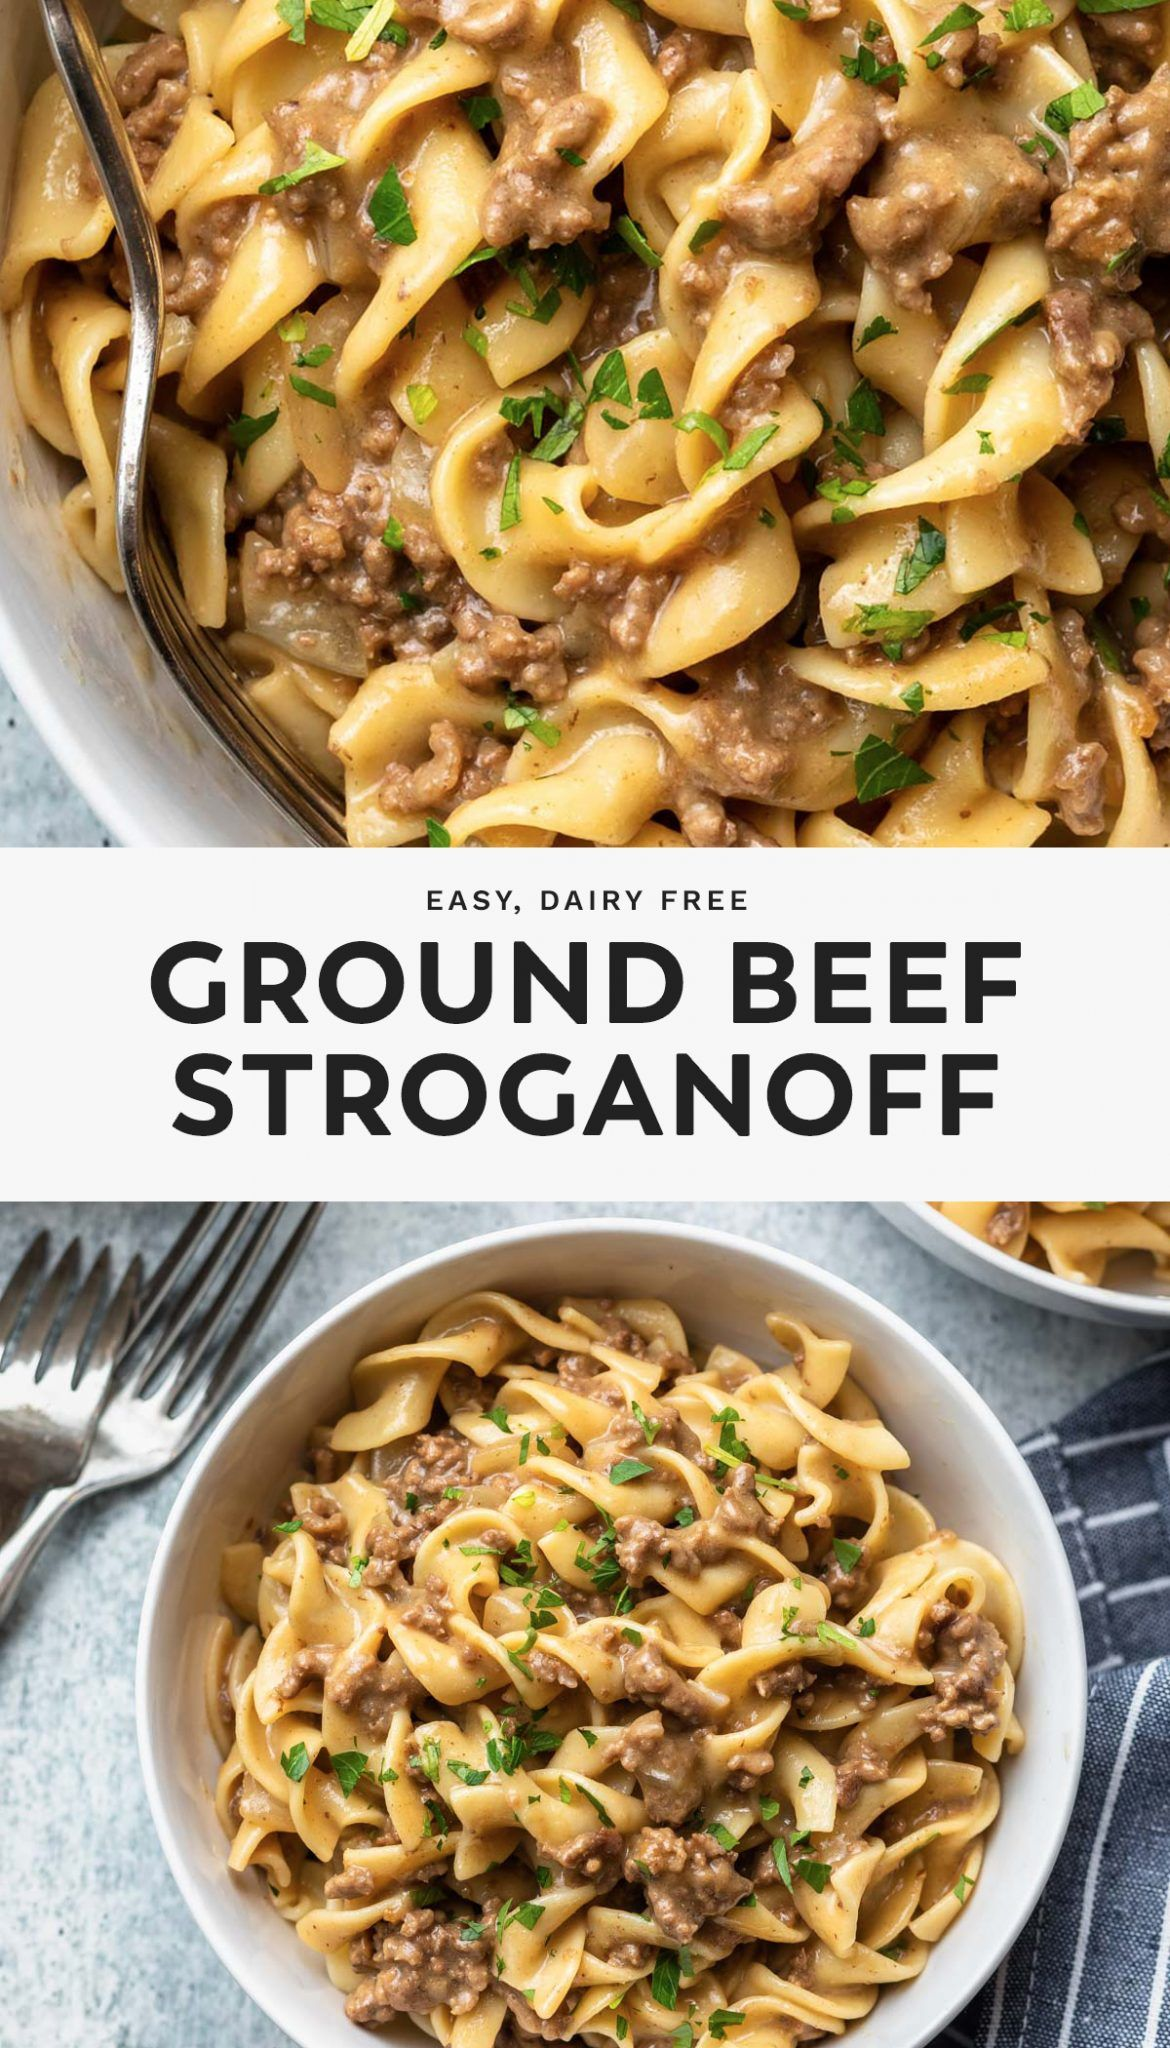 Ground Beef Stroganoff Recipe In 2020 Ground Beef Stroganoff Ground Beef Recipes For Dinner Ground Beef Paleo Recipes